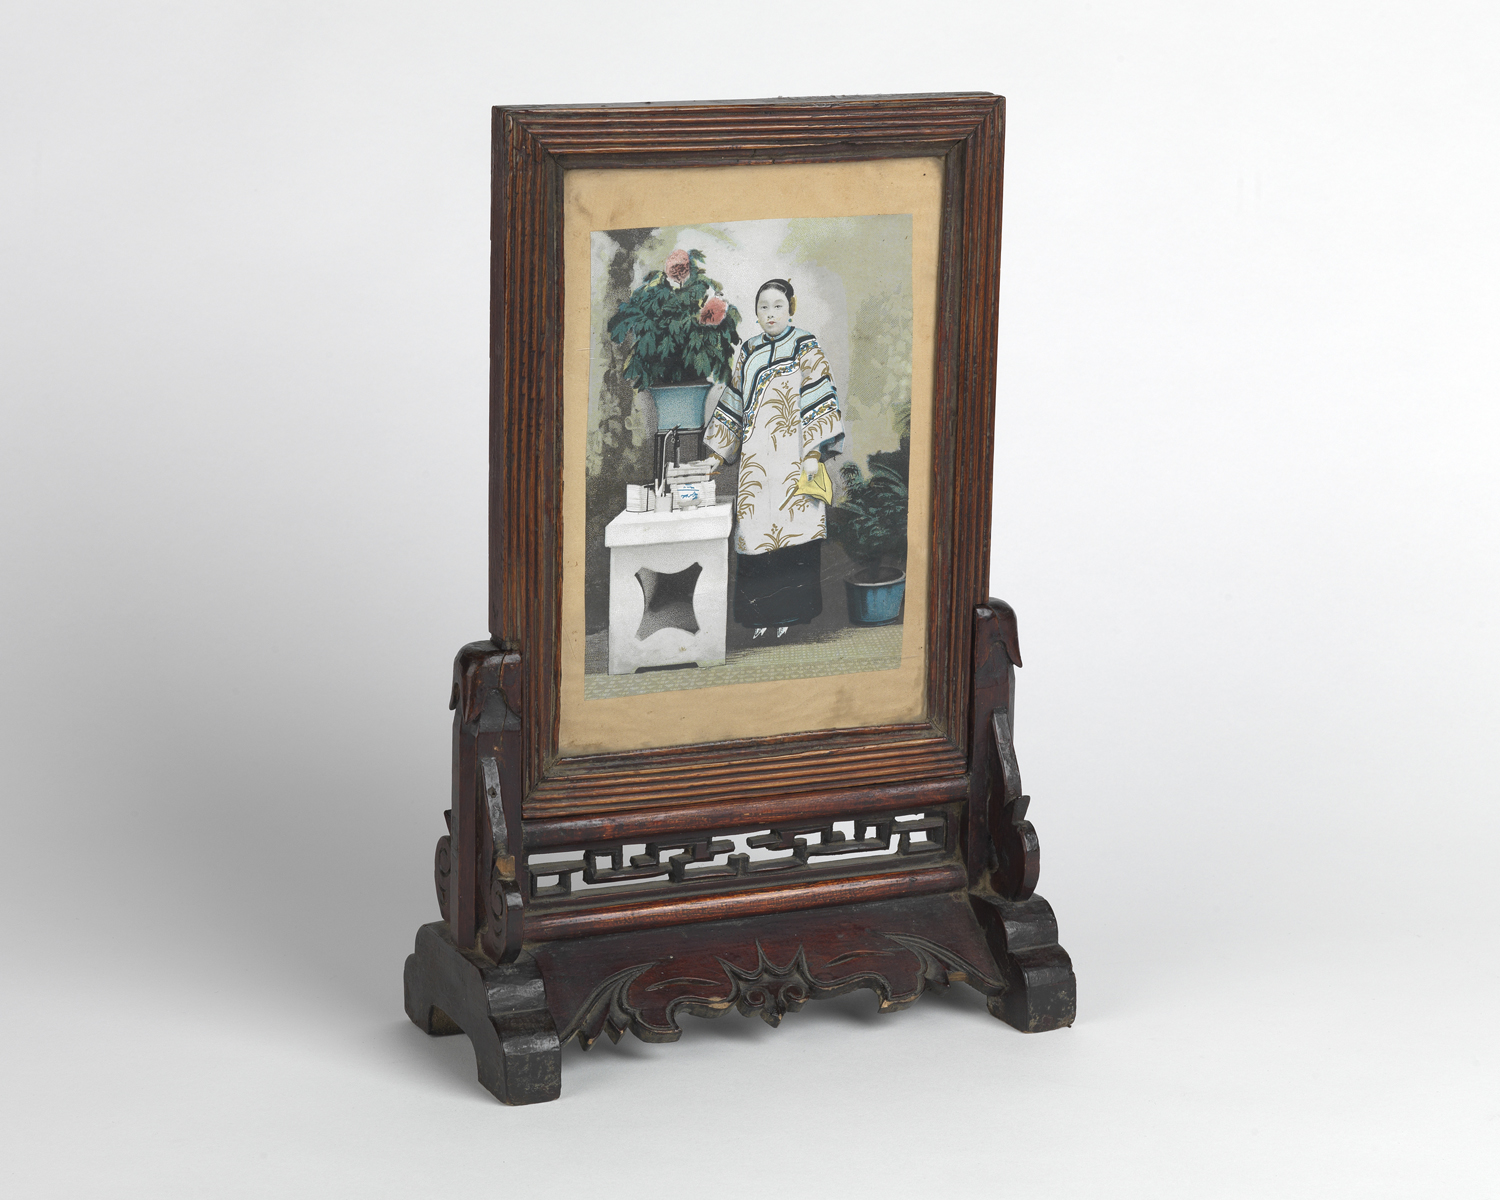 Period Chinese altar piece with hand-tinted portrait of a woman with bound feet.  1890s